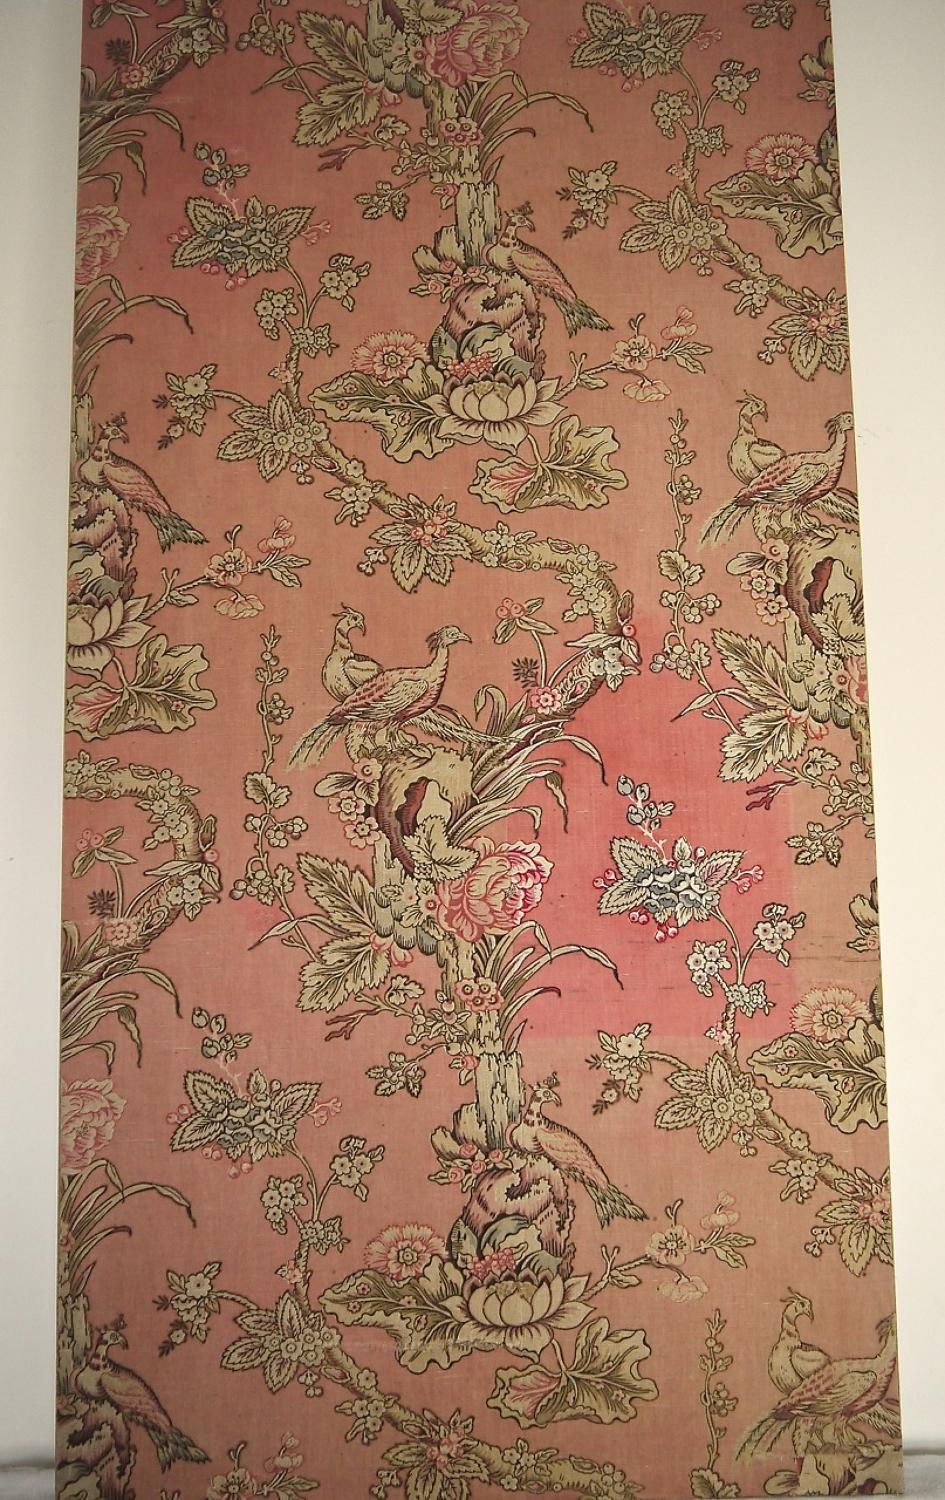 19th century French Printed Linen Panel